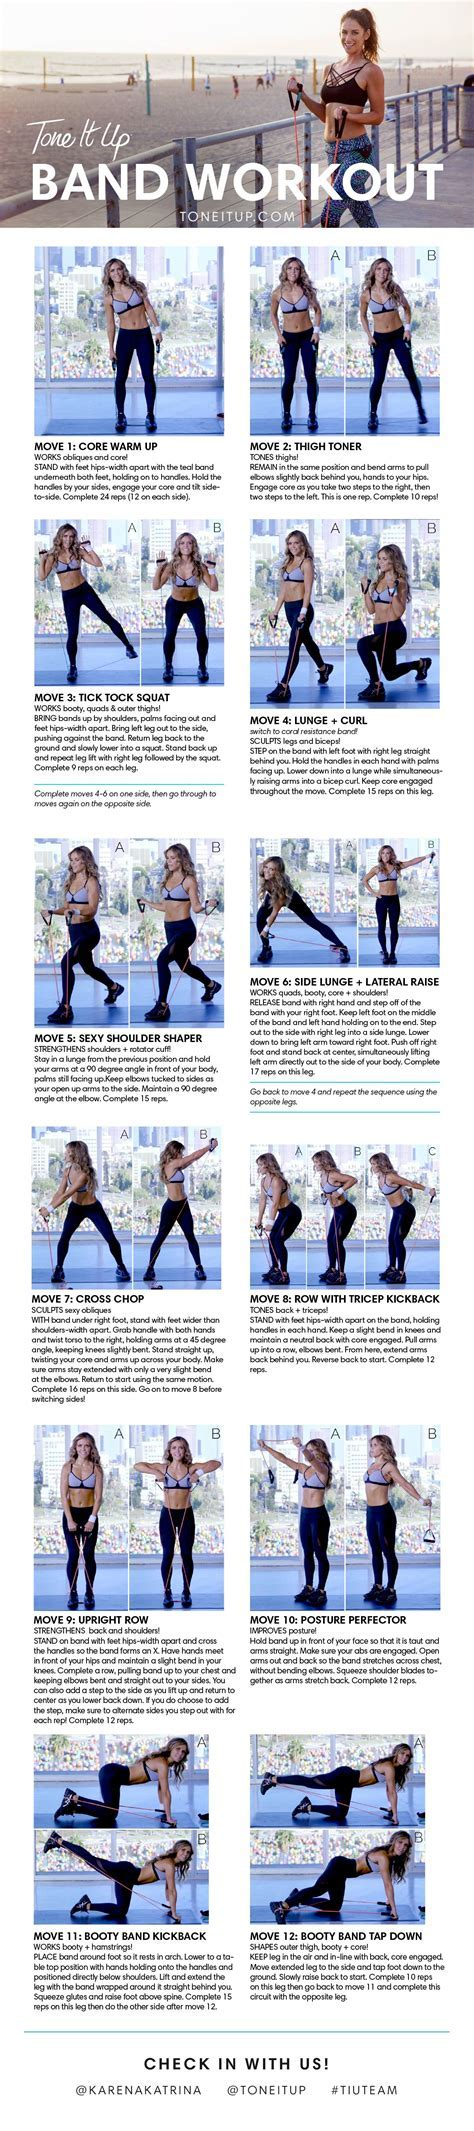 TONE IT UP BAND WORKOUT!   Men and women, Survival and